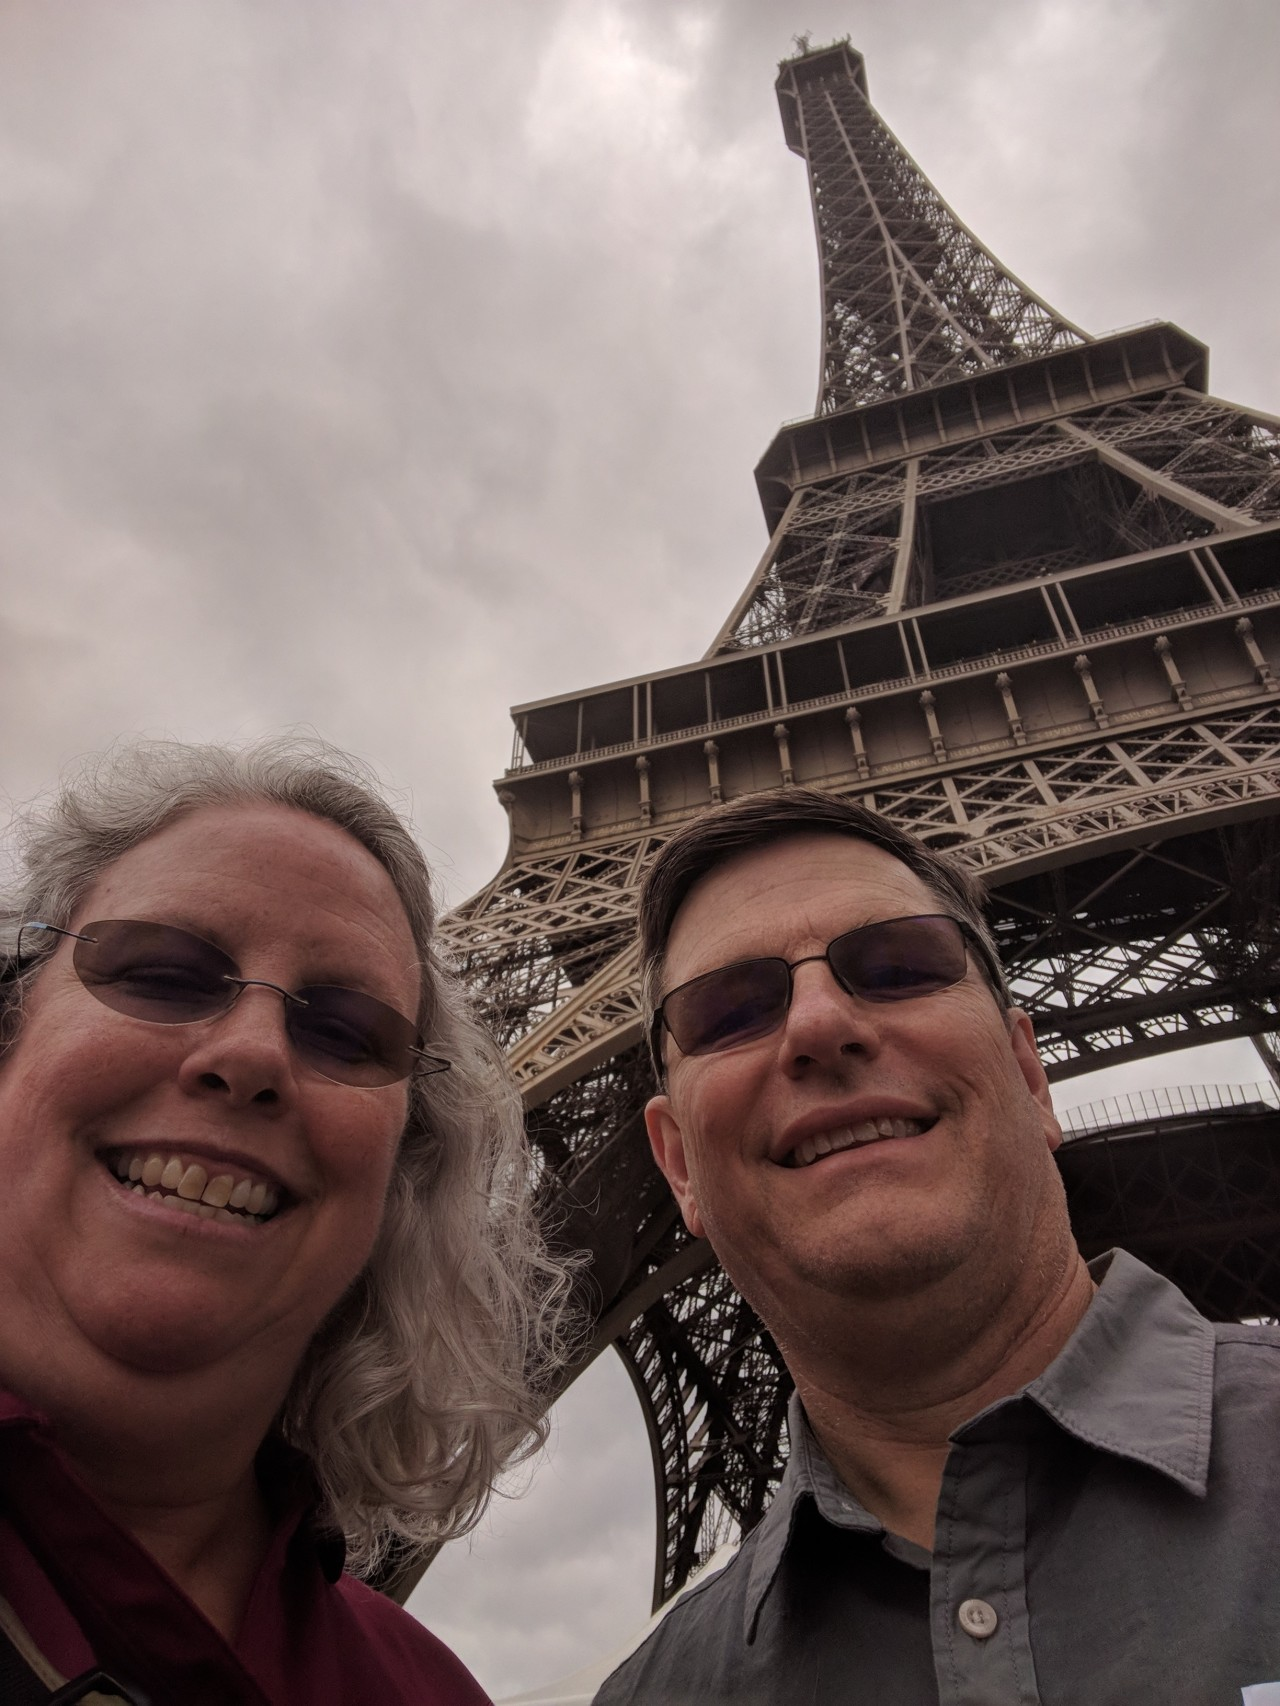 Day 17-18:  A Slice of Paris — The EiffelTower